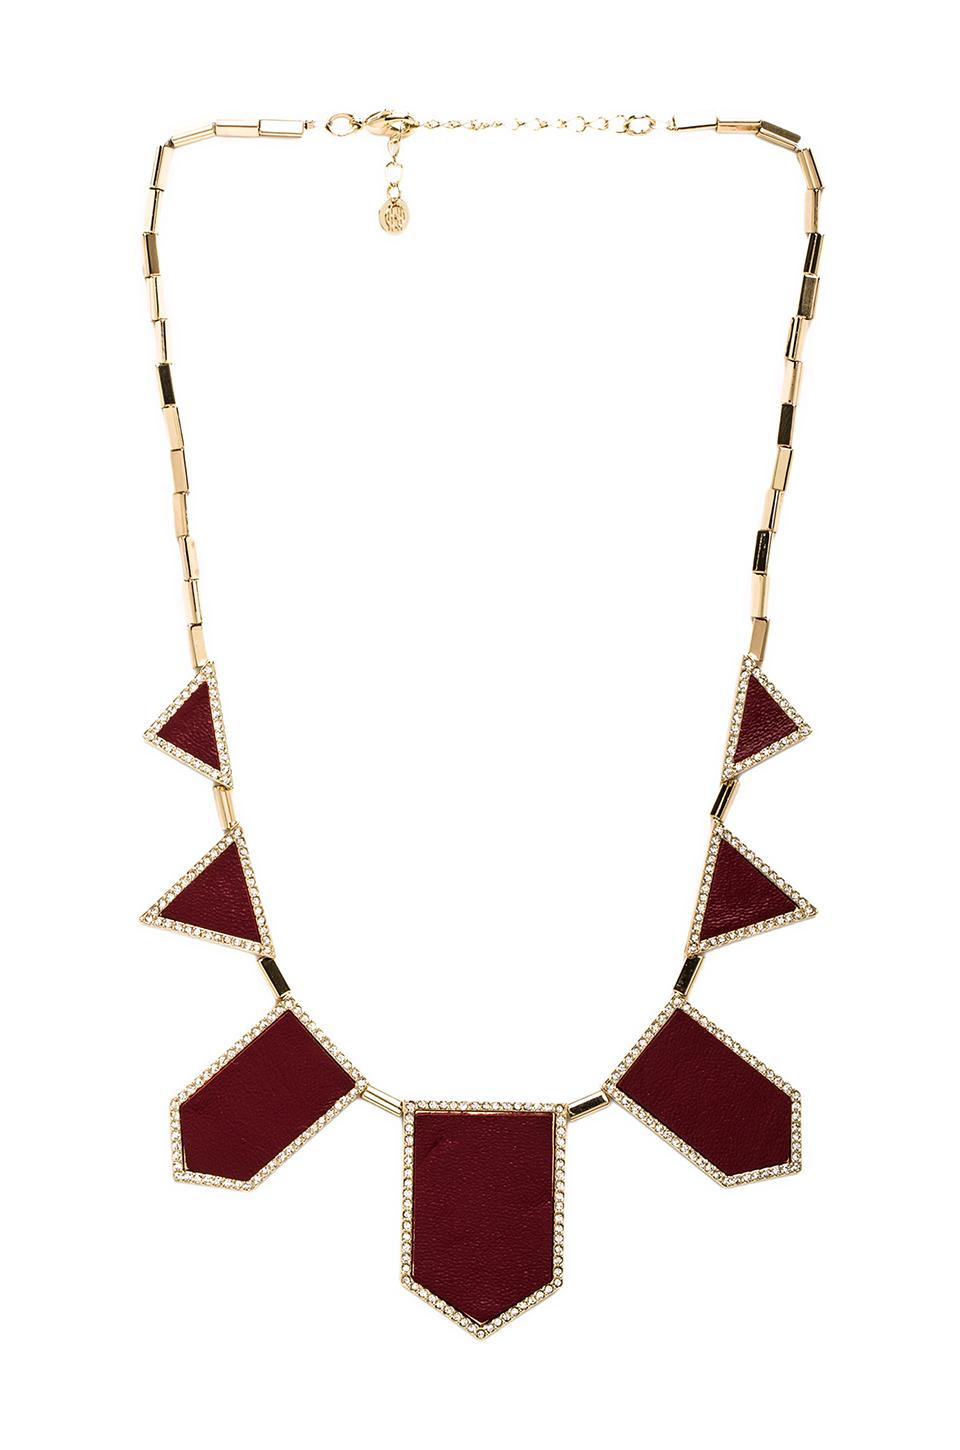 House of Harlow Pave Five Station Necklace in Gold Tone Cranberry